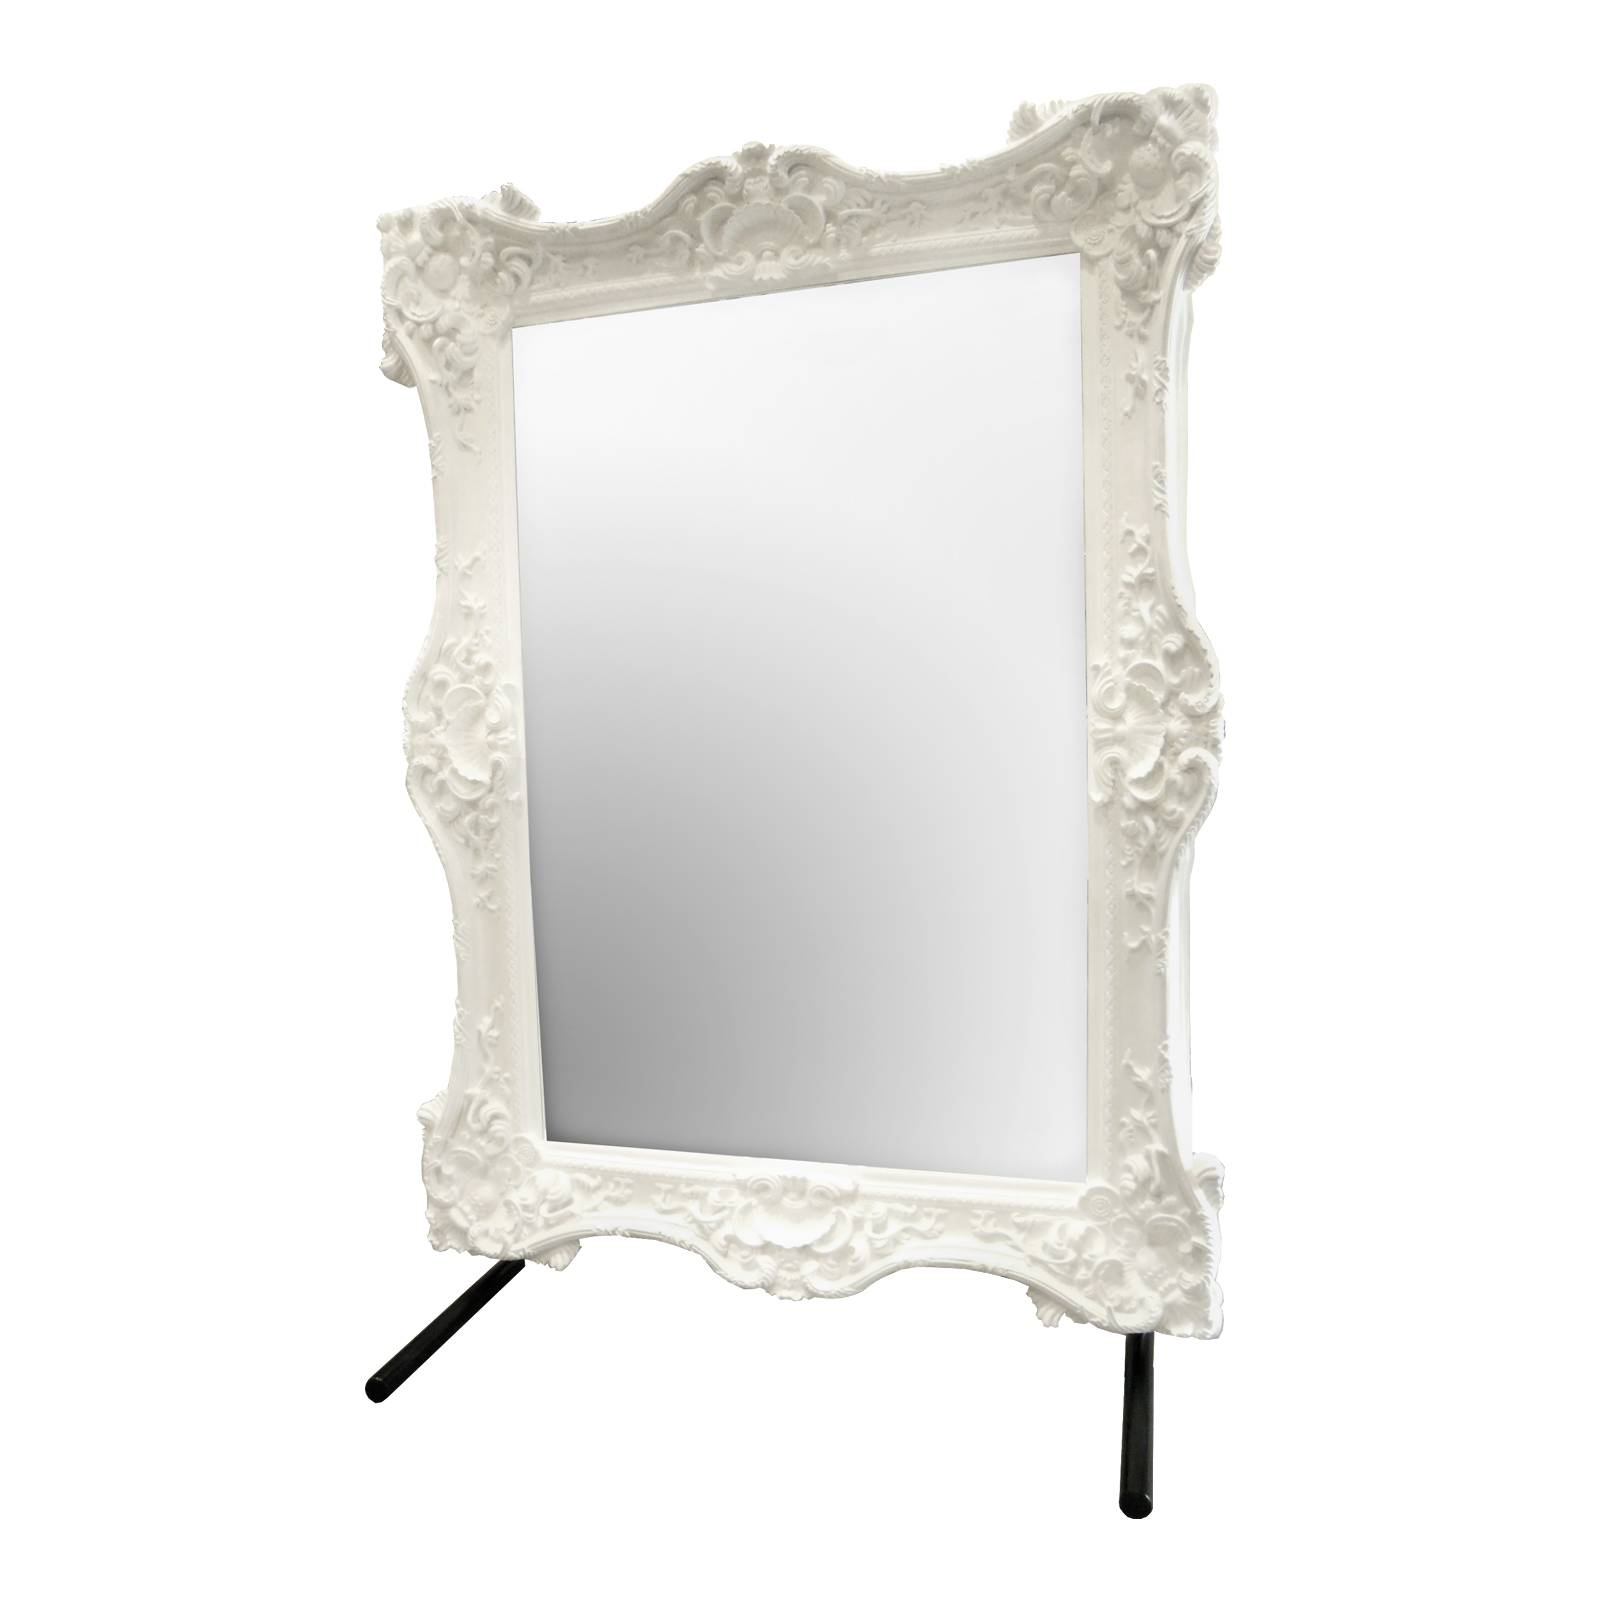 Bathroom: Astounding Baroque Mirror With Unique Frame For Bathroom For Black Baroque Mirrors (View 8 of 25)